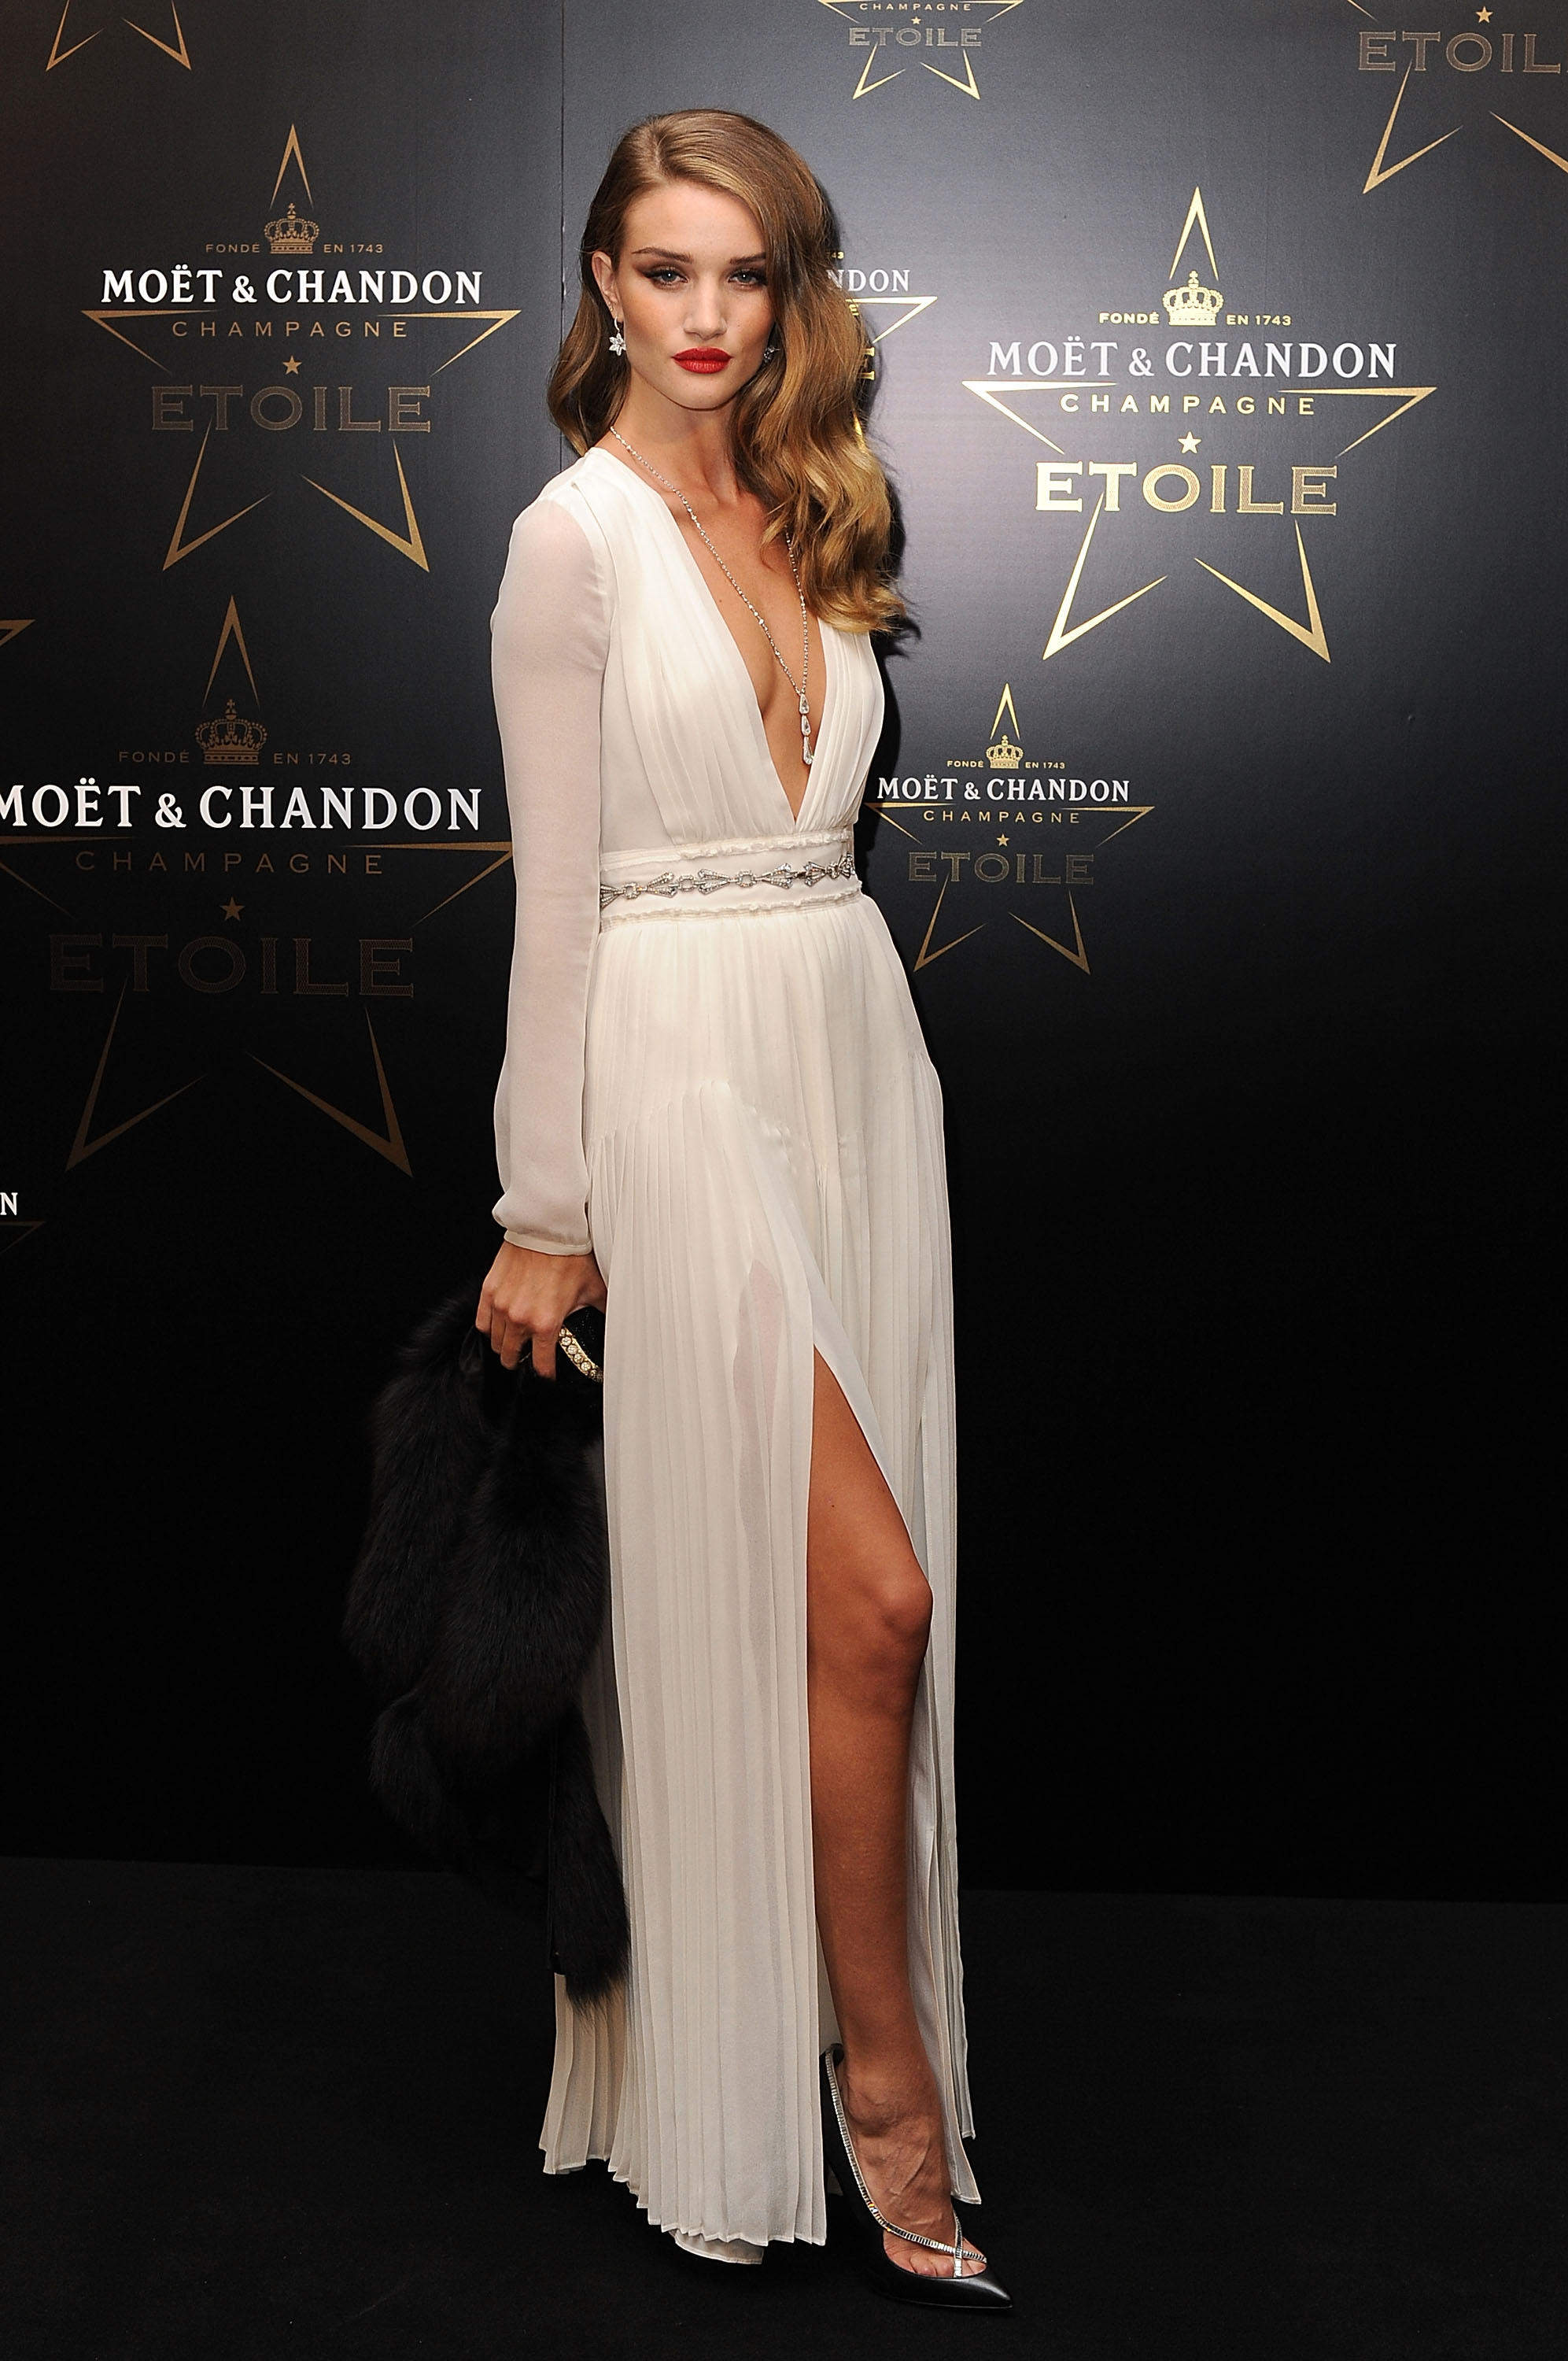 Celebrity-Inspired Holiday Party Looks - Rosie Huntington-Whiteley